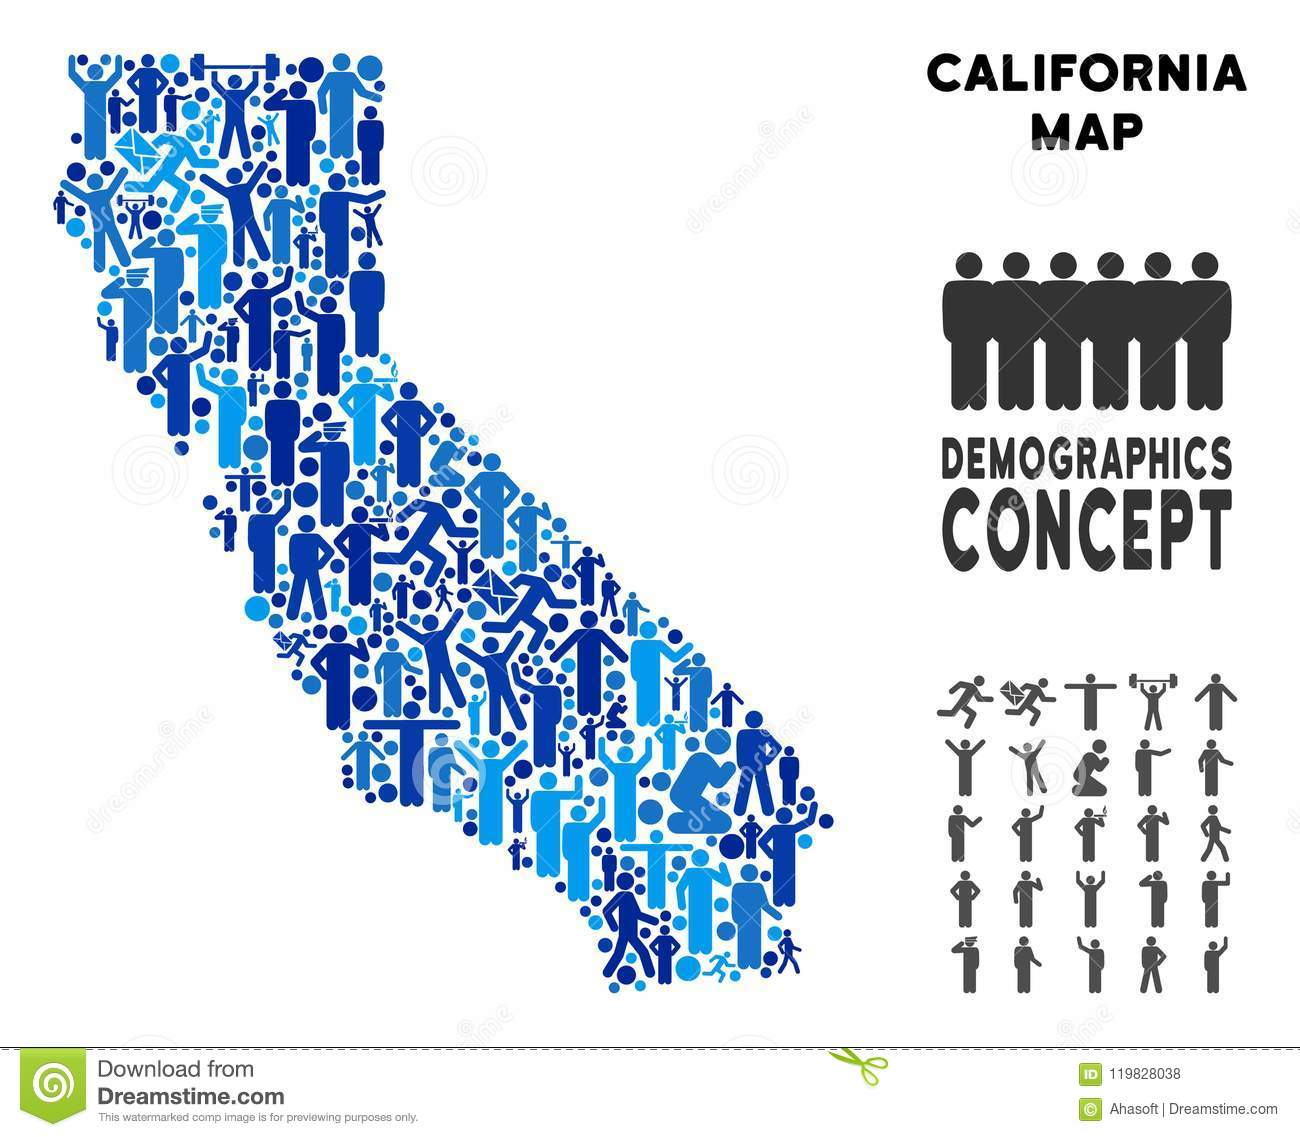 Mapa de California del Demographics